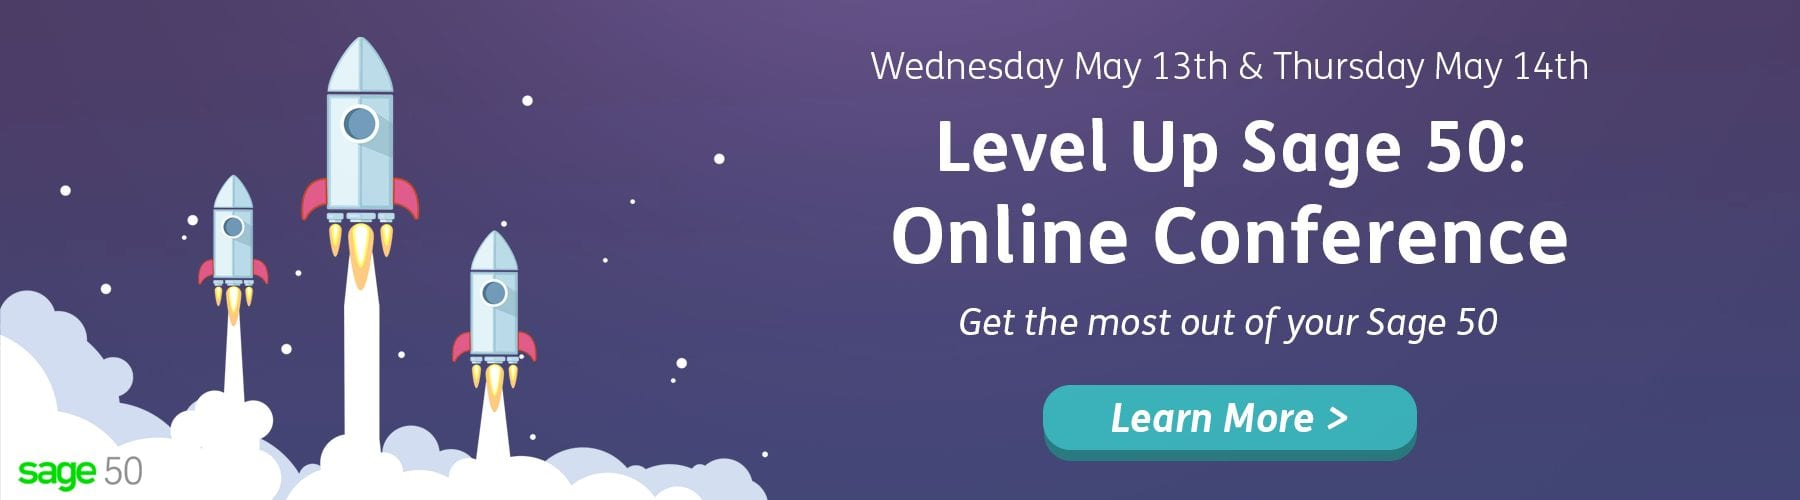 Level Up Sage 50 Online Conference - Get more out of your Sage 50 event